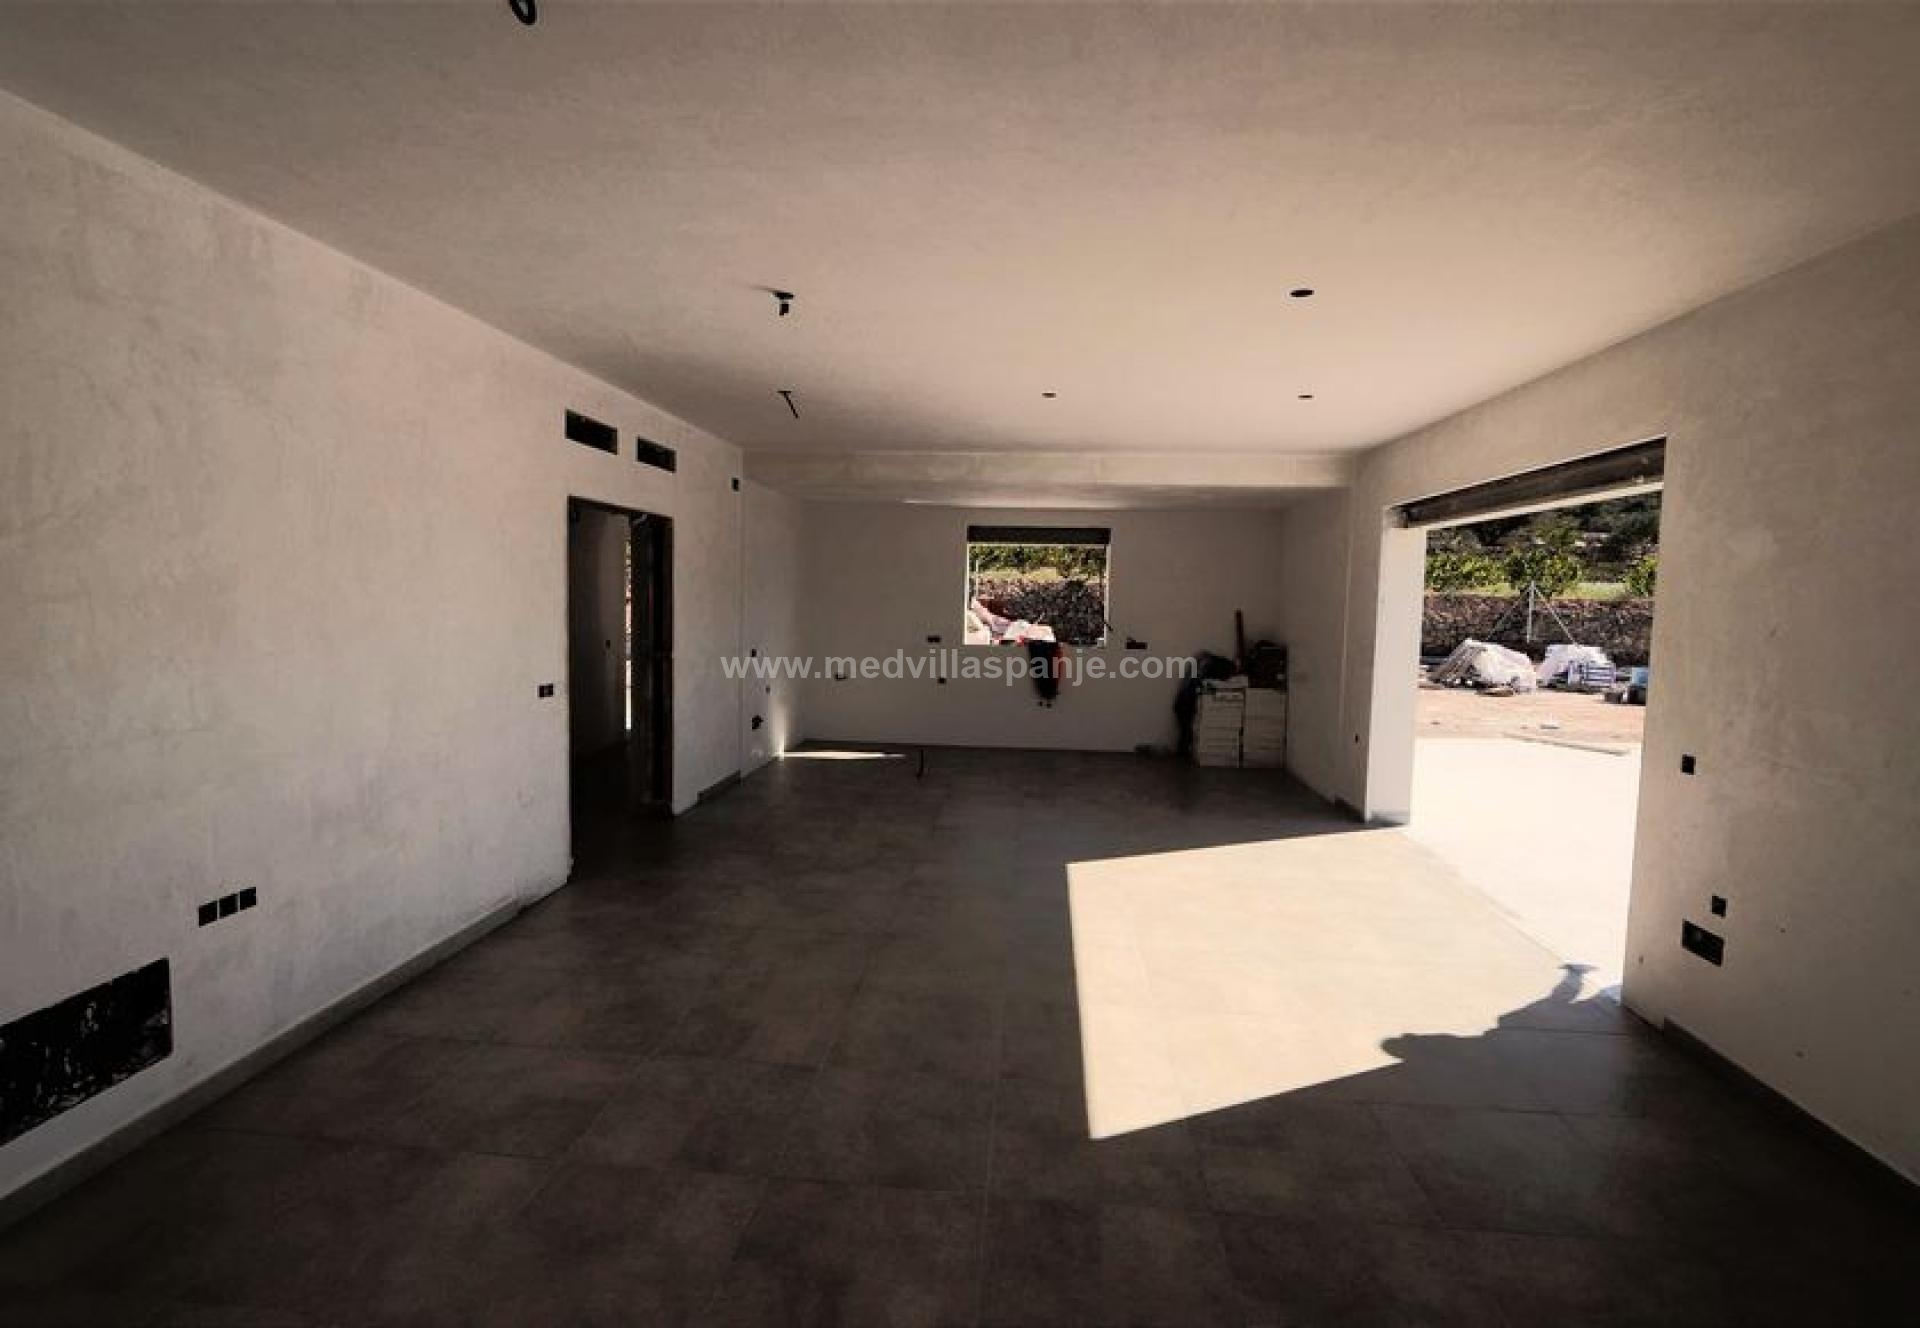 Modern new build villa with double garage and pool in Medvilla Spanje